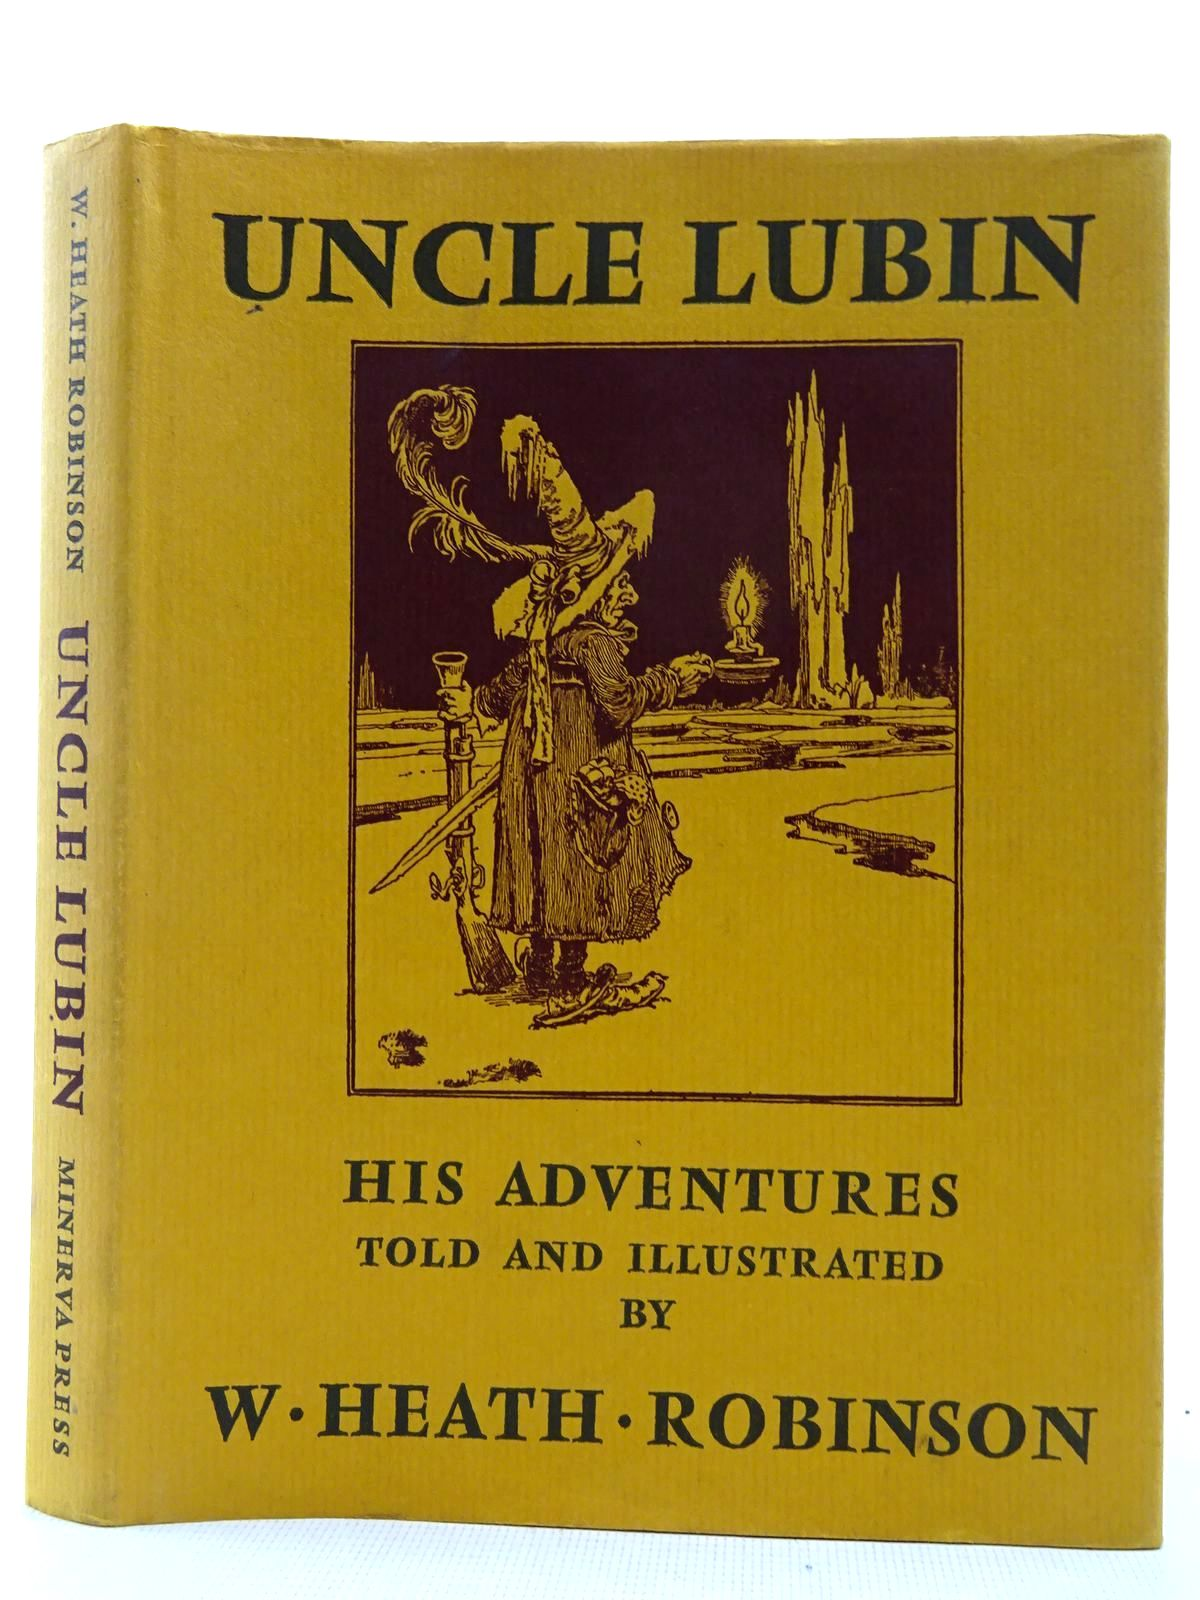 Photo of THE ADVENTURES OF UNCLE LUBIN written by Robinson, W. Heath illustrated by Robinson, W. Heath published by Minerva Press (STOCK CODE: 2128700)  for sale by Stella & Rose's Books